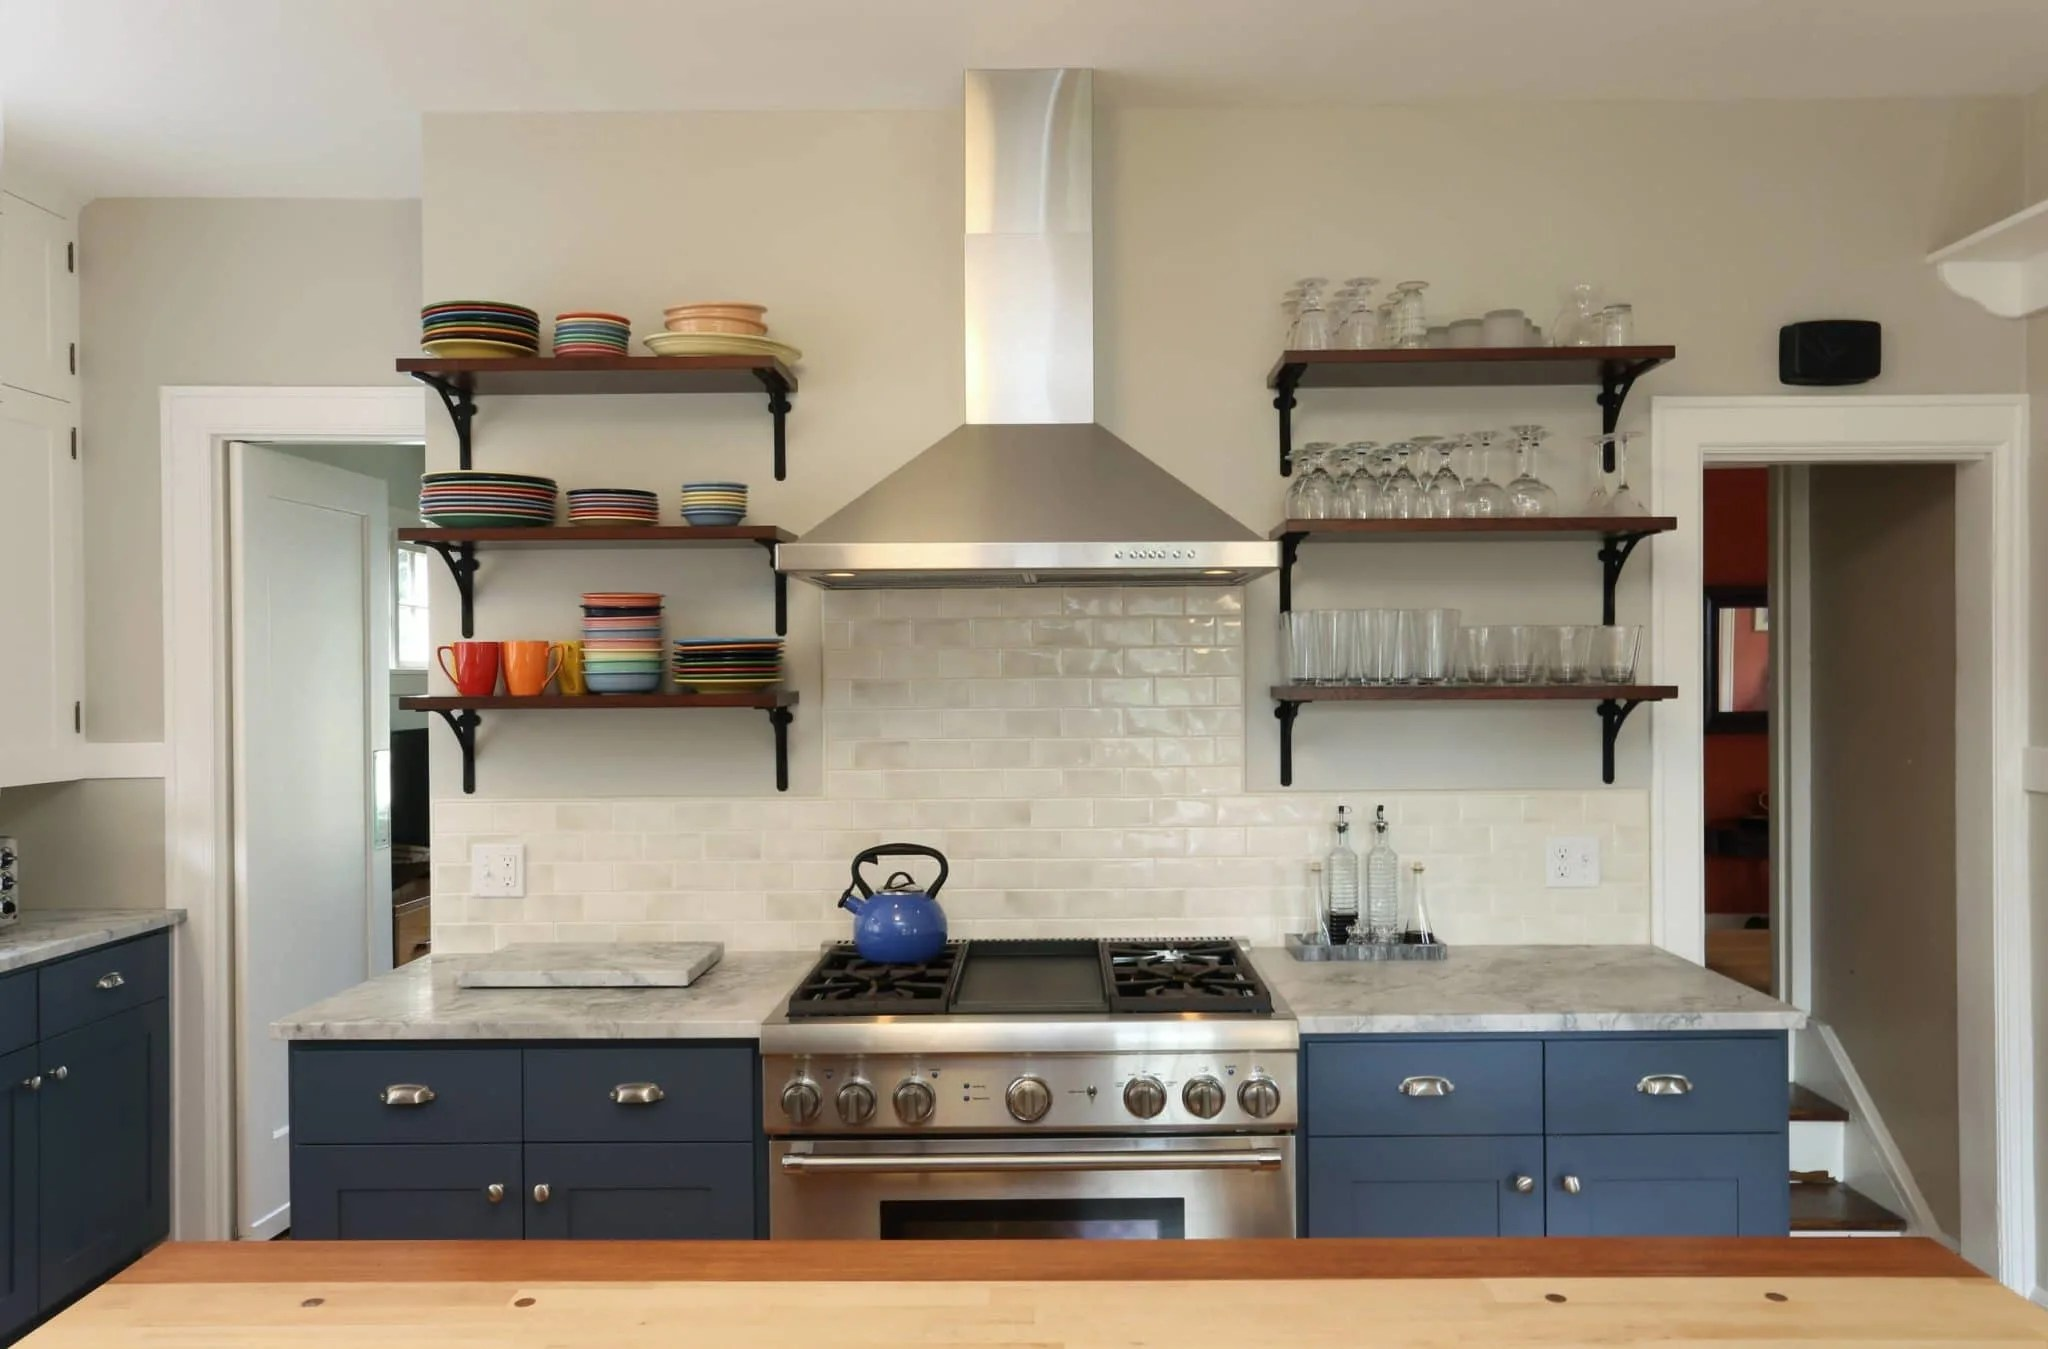 Doorless Kitchen Cabinets Upper Kitchen Cabinets Or Open Shelves For Your Kitchen